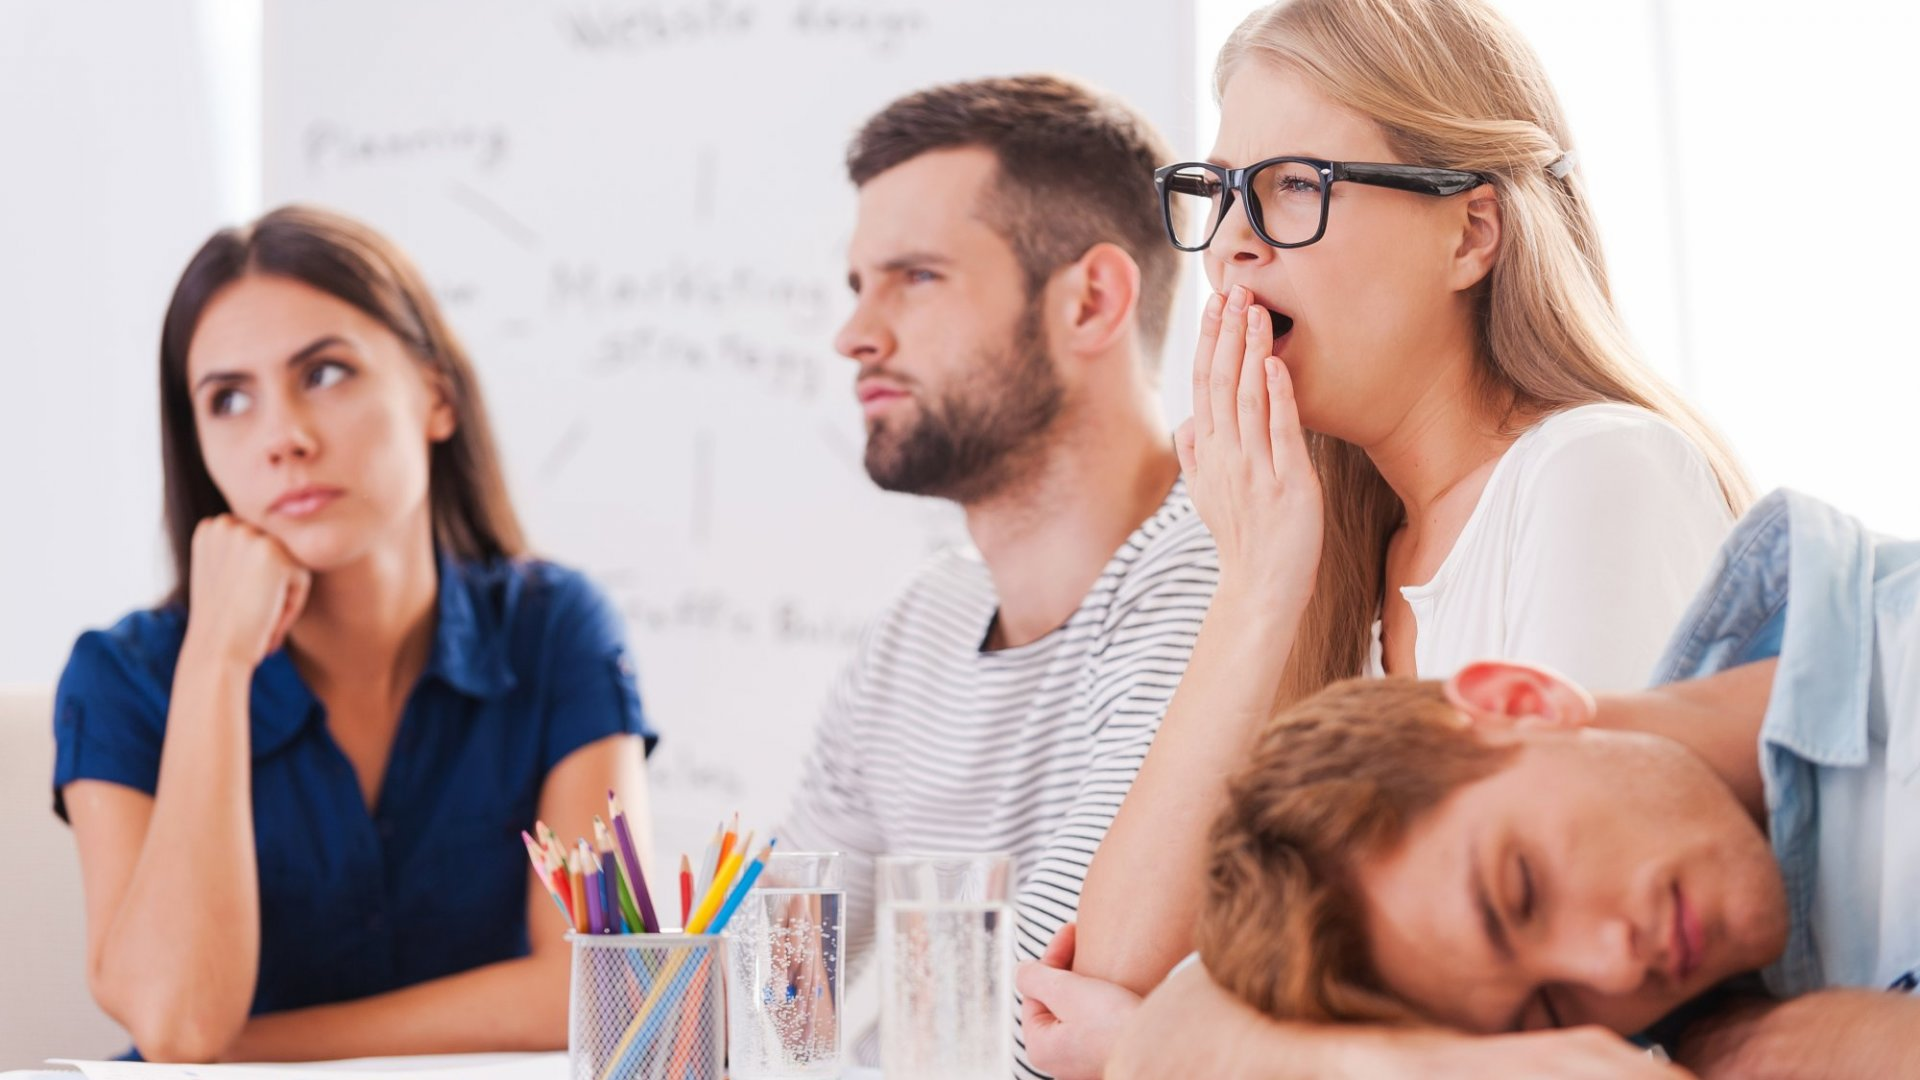 Stop Having Dull Meetings By Doing This 1 Thing